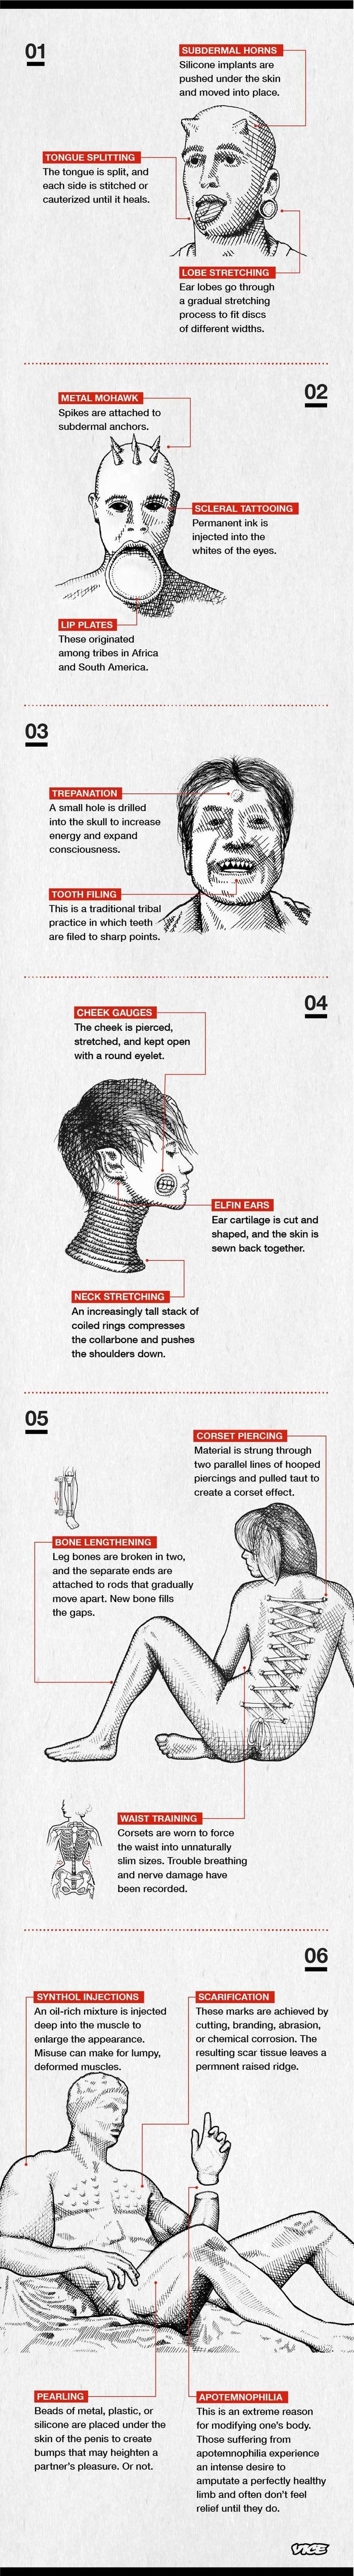 A Breakdown of Extreme Body Modification | VICE | United States